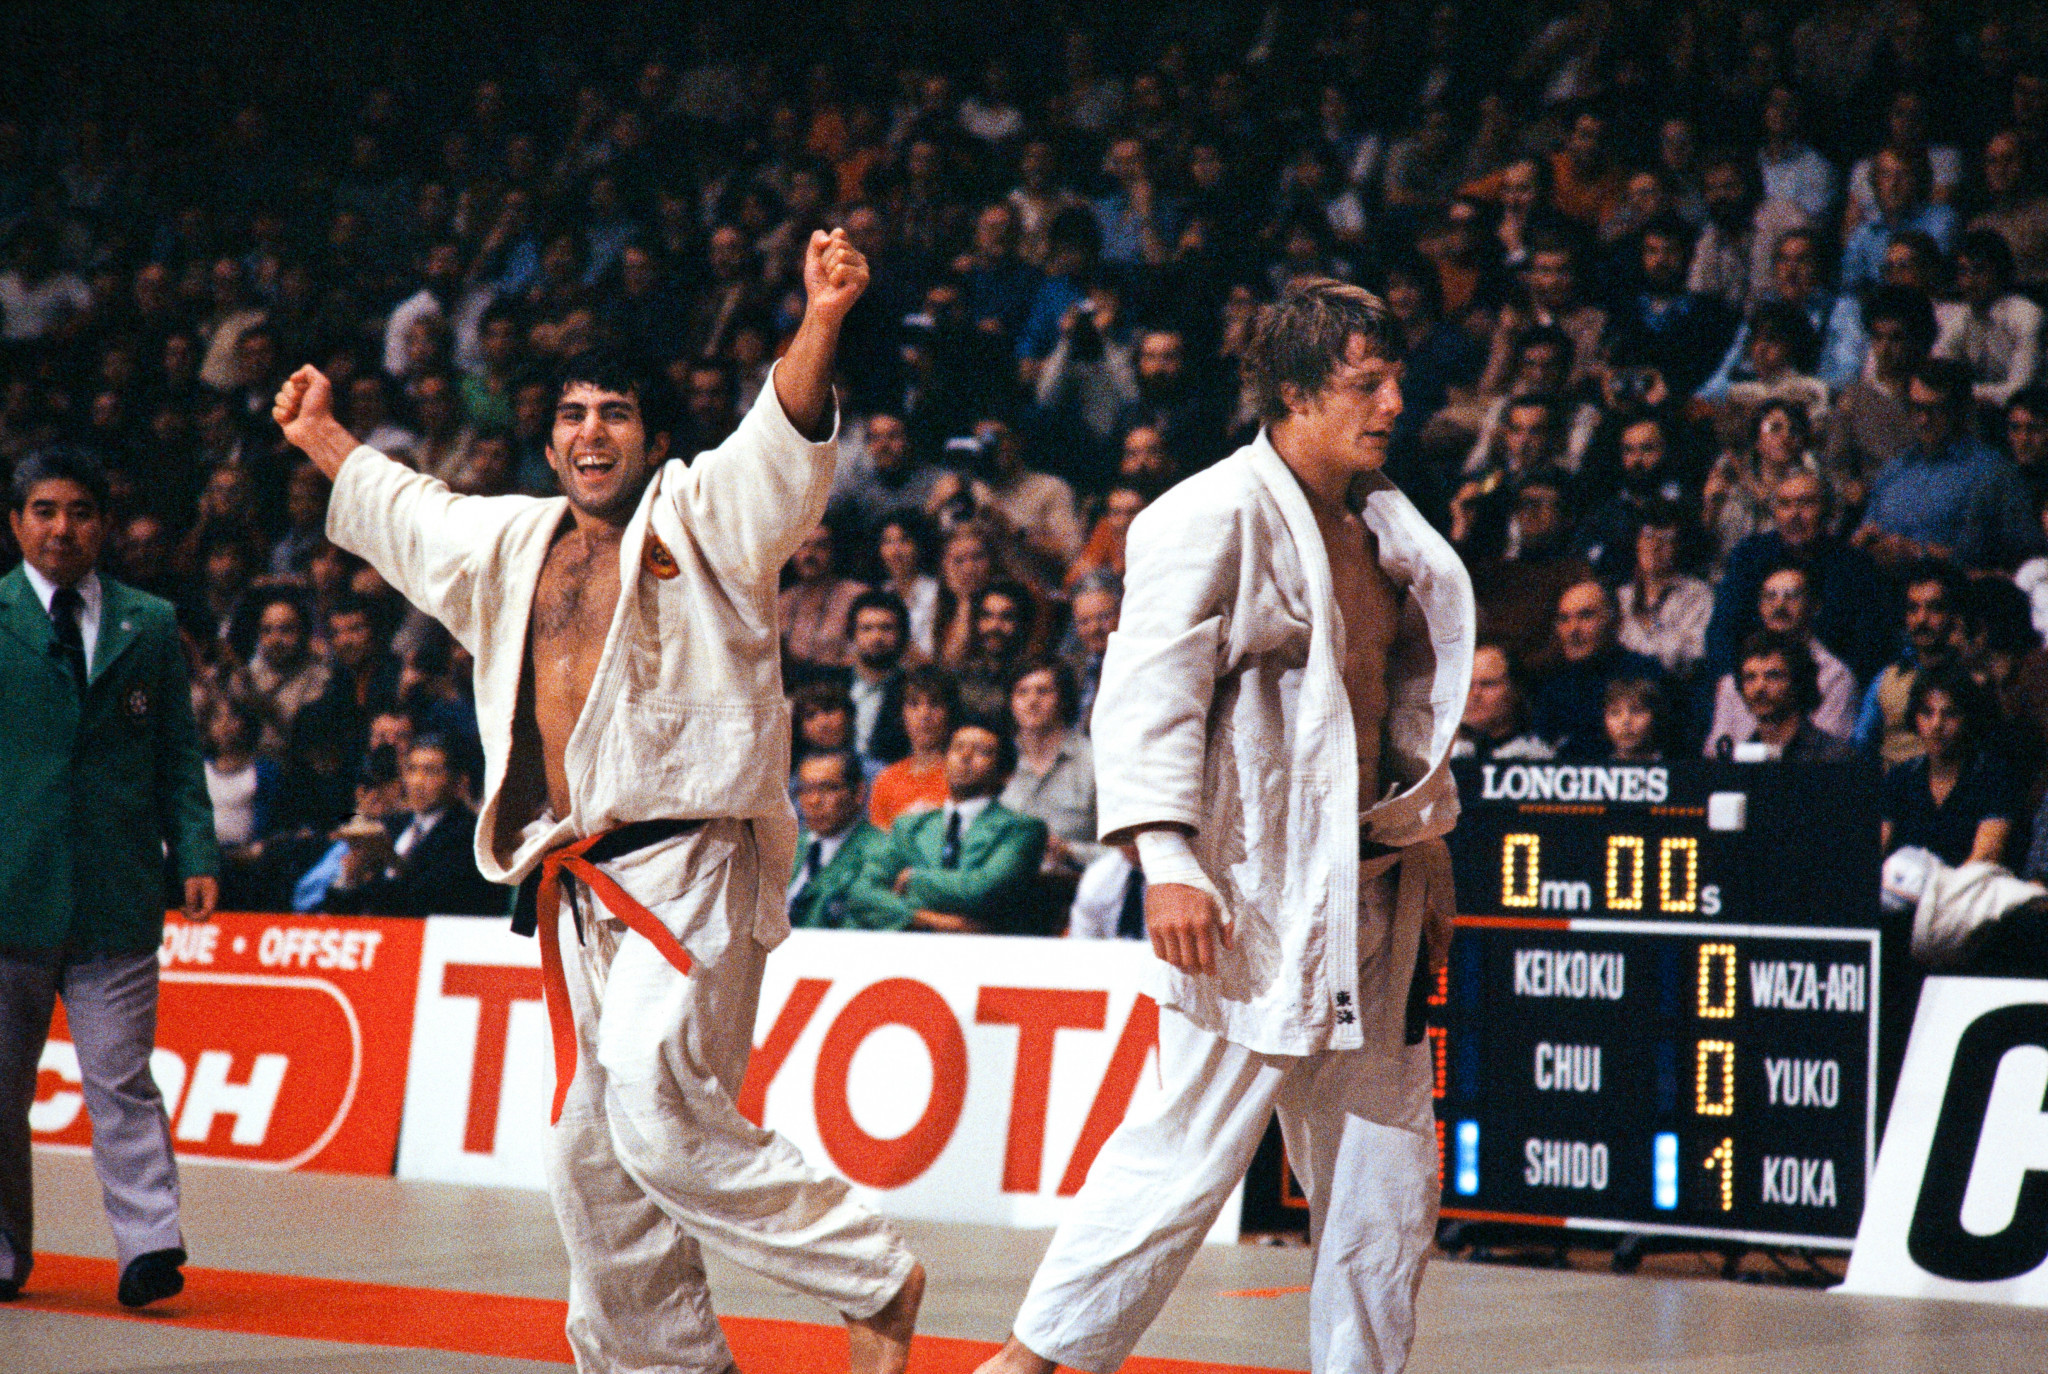 Belgium's Robert Van de Walle reacts (R) after his defeat against Georgian Tengiz Khubuluri(L) during the Judo World Championships in Paris, on December 1979 ©Getty Images